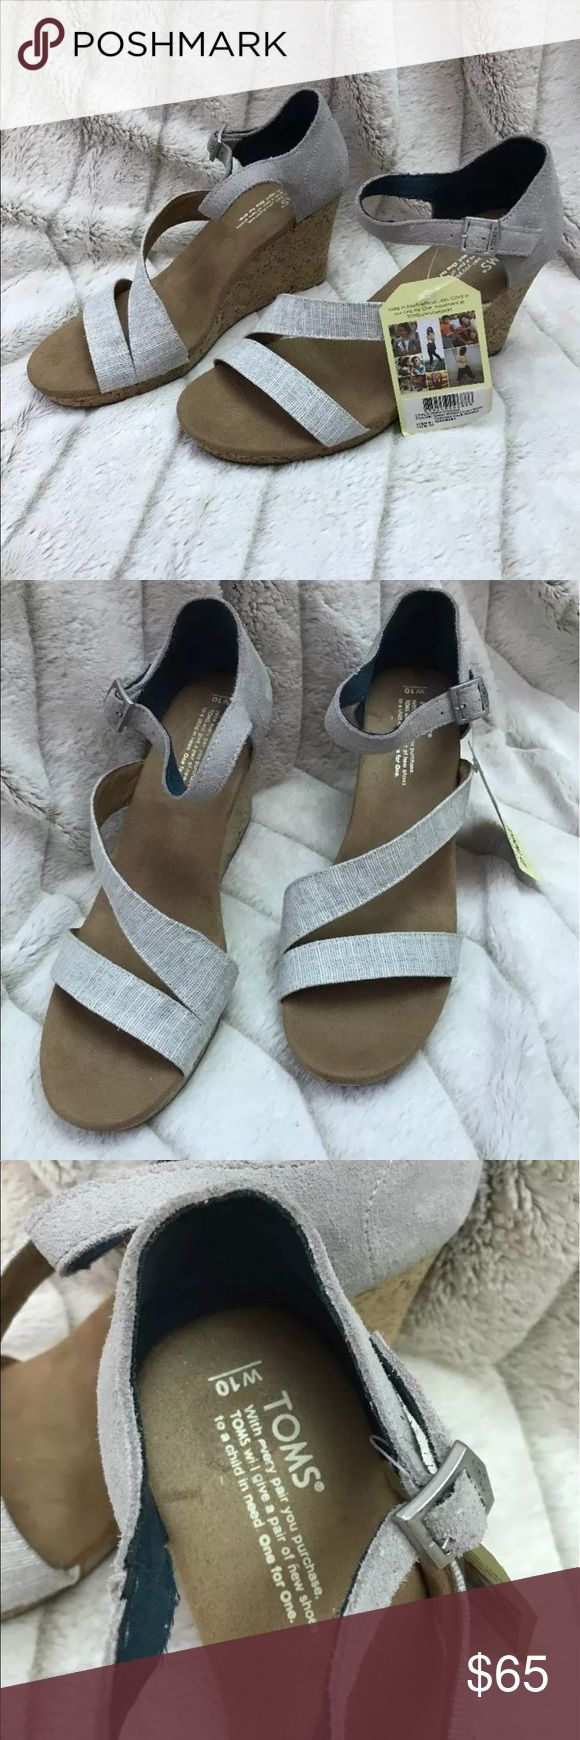 TOMS Women's White Linen Chevron Cork Wedges Clarissa style Brand new shoes never worn. The heel strap is suede These shoes are beautiful! TOMS Shoes Wedges